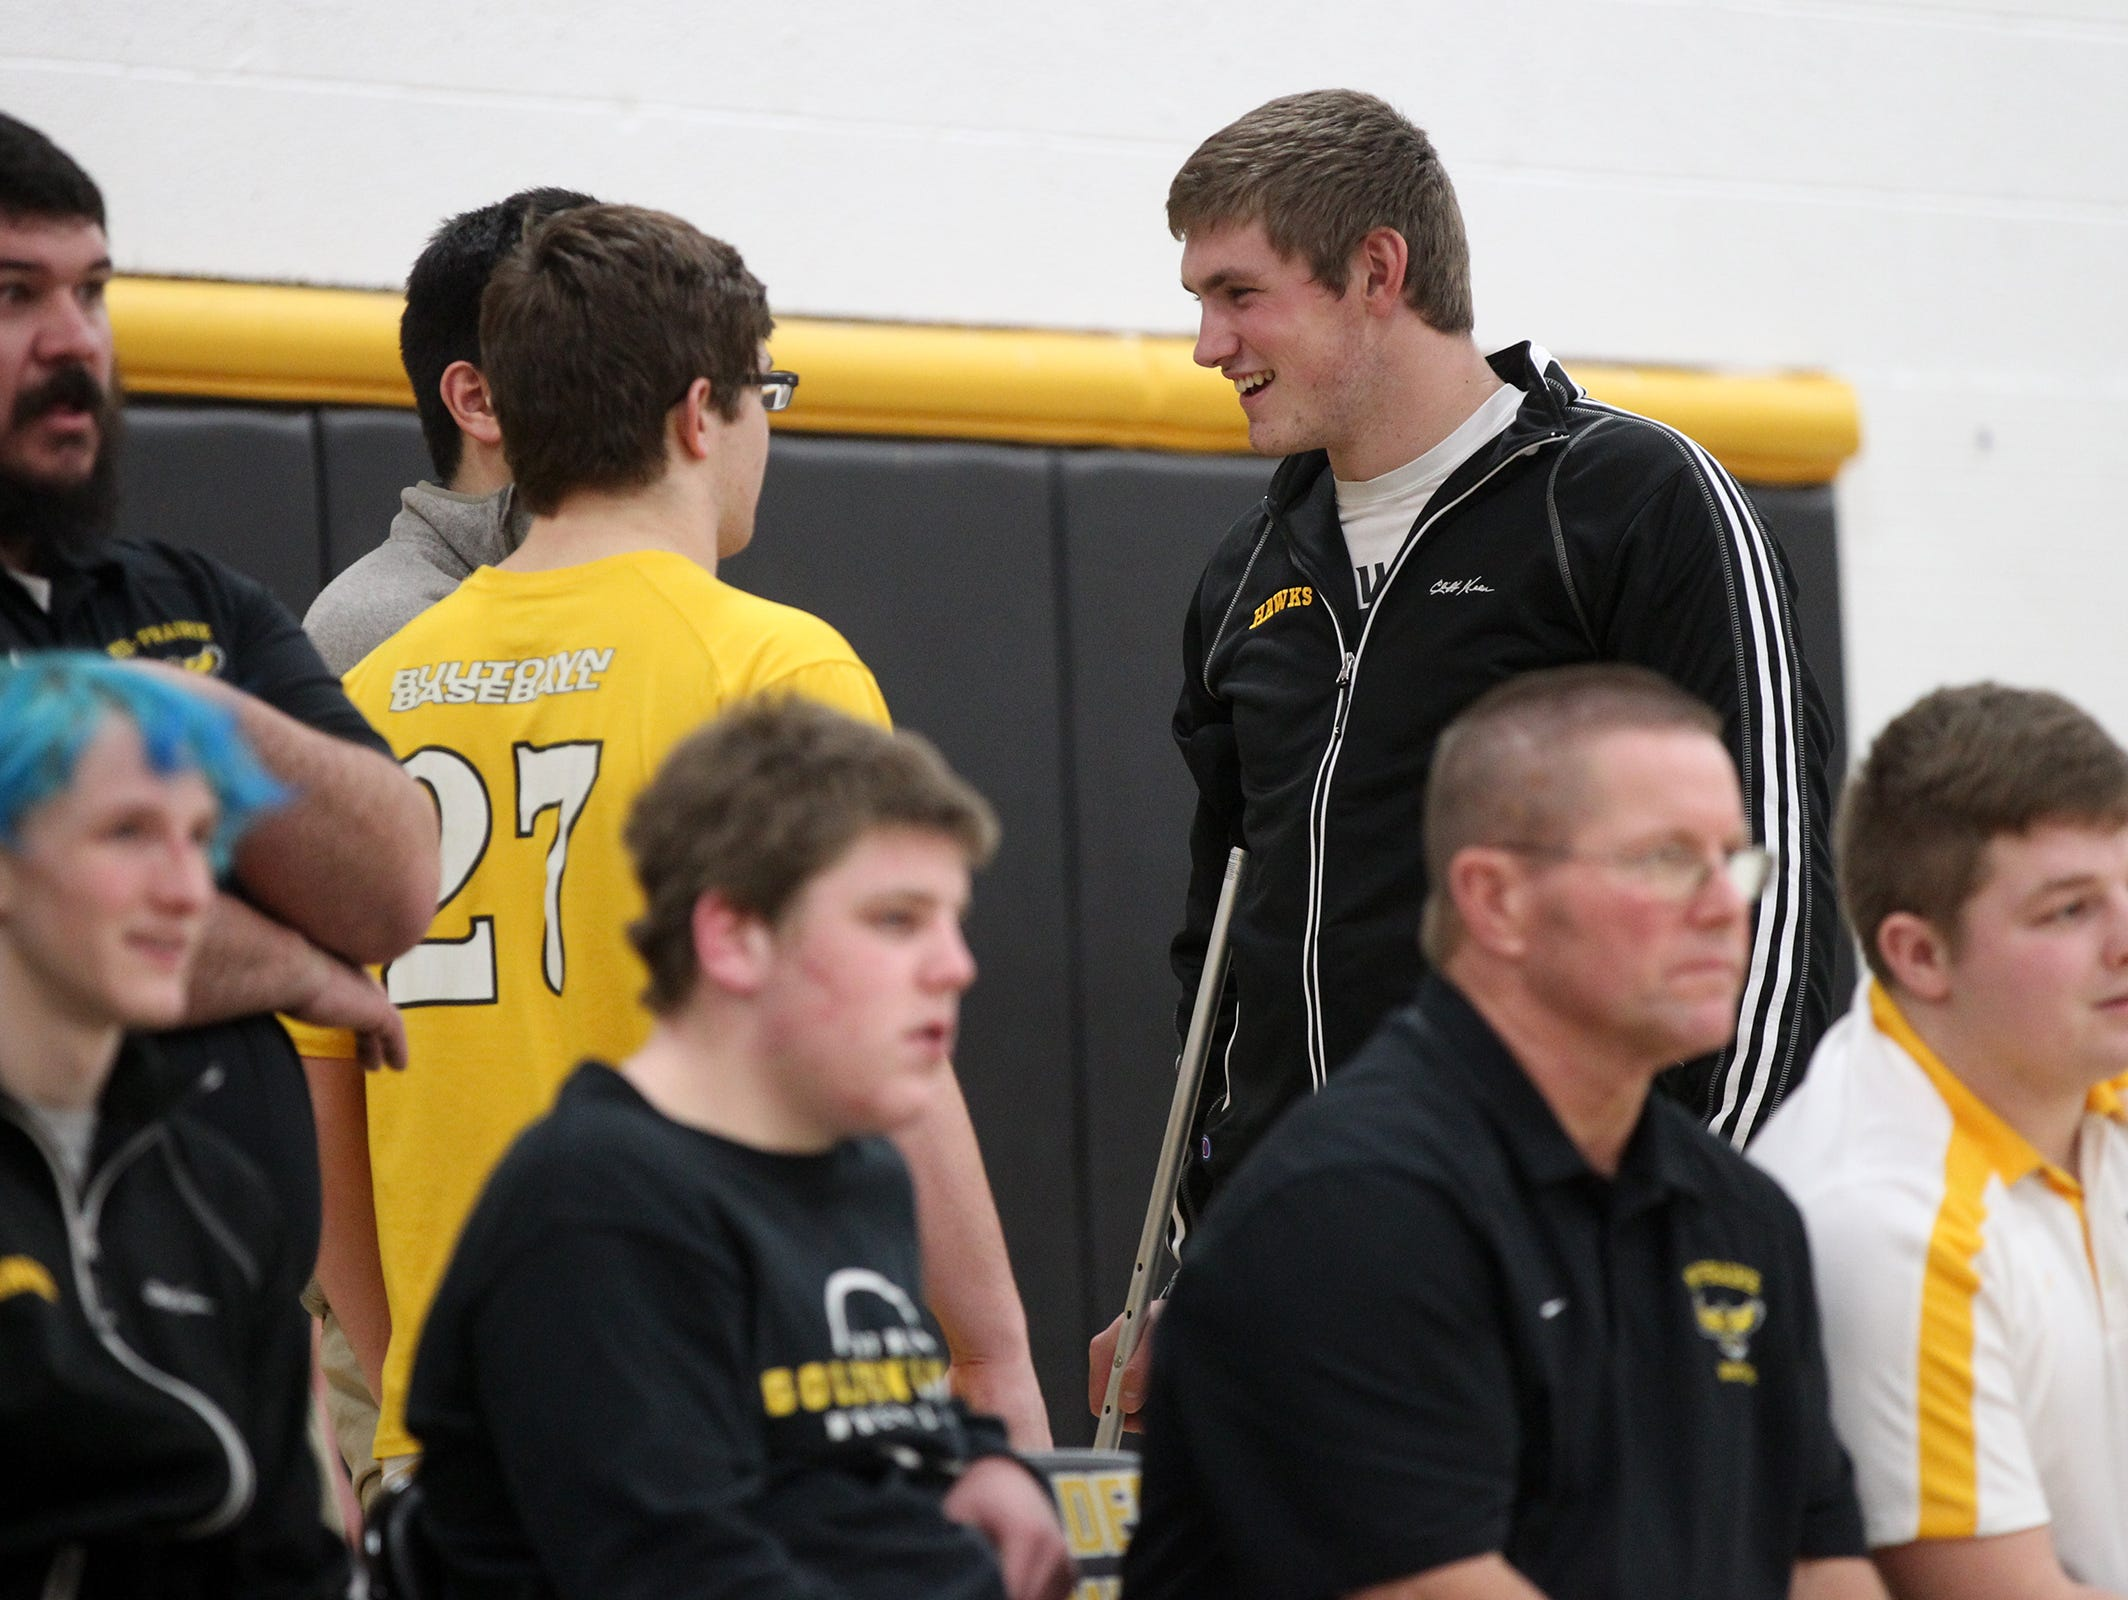 Mid-Prairie's Levi Duwa chats with friends before the Golden Hawks' dual against Cascade at Mid-Prairie on Thursday, Jan. 12, 2017.